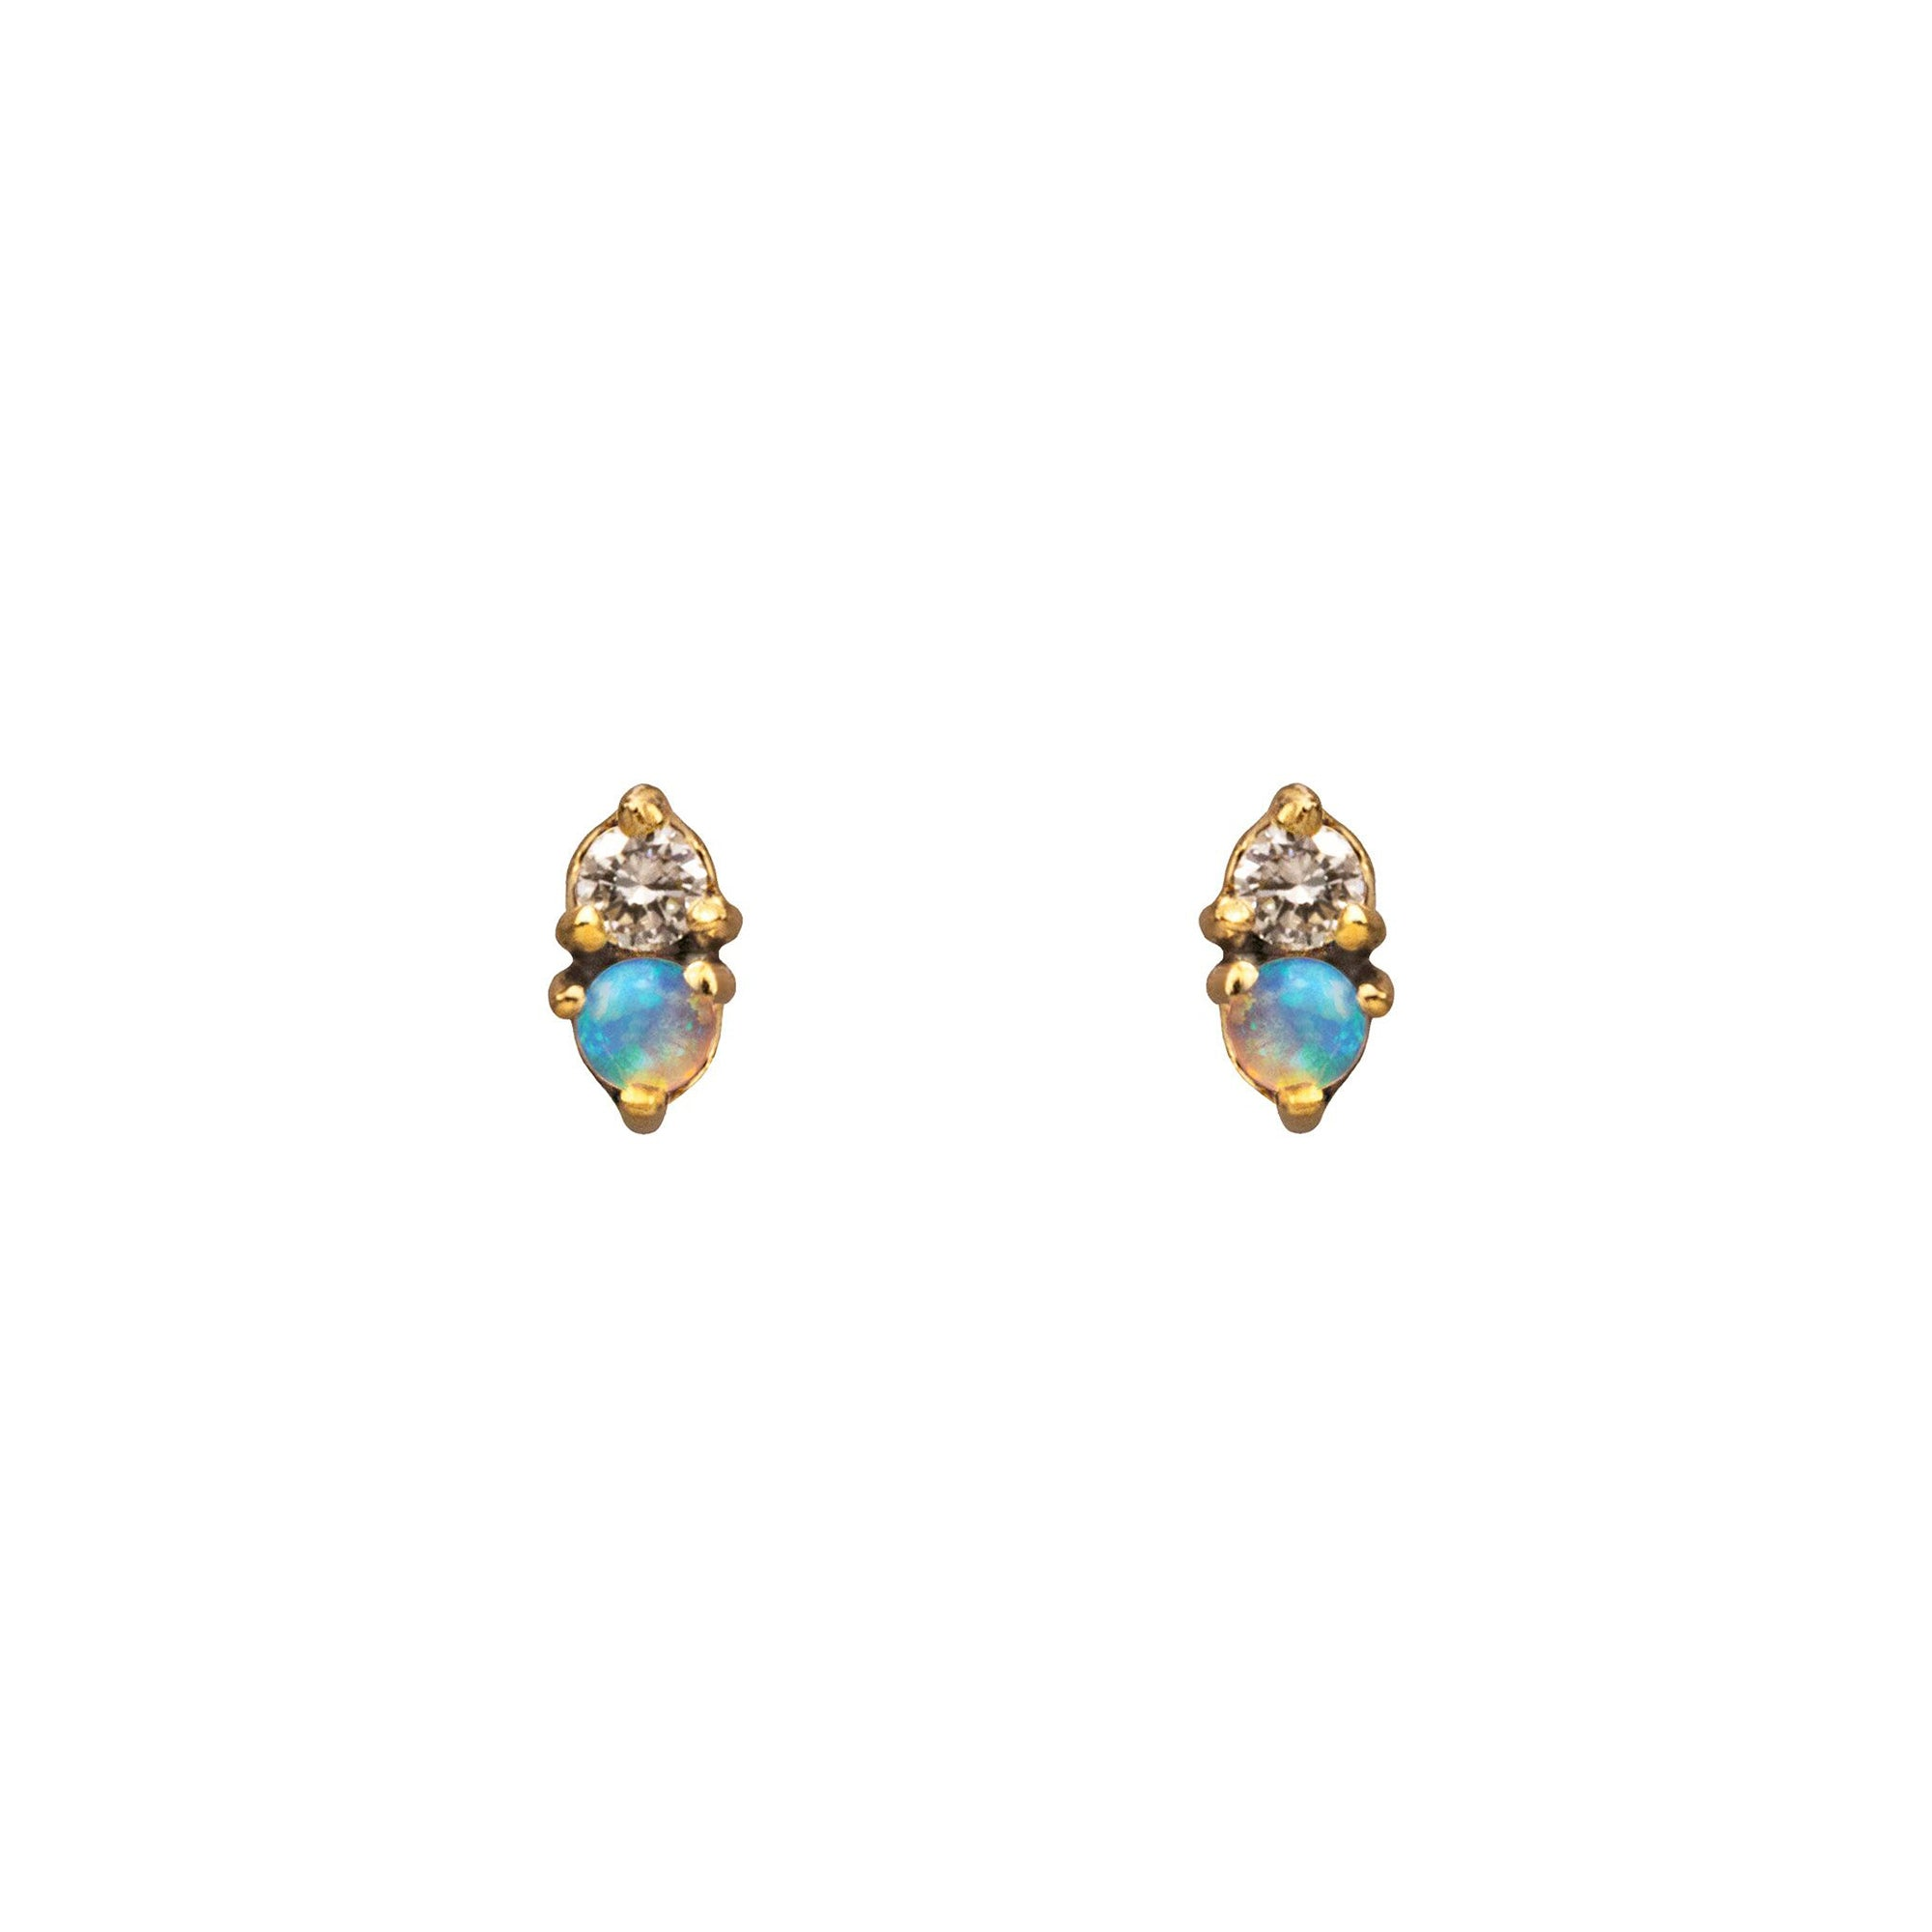 WWAKE Two Step Opal and Diamond Earrings - Earrings - Broken English Jewelry